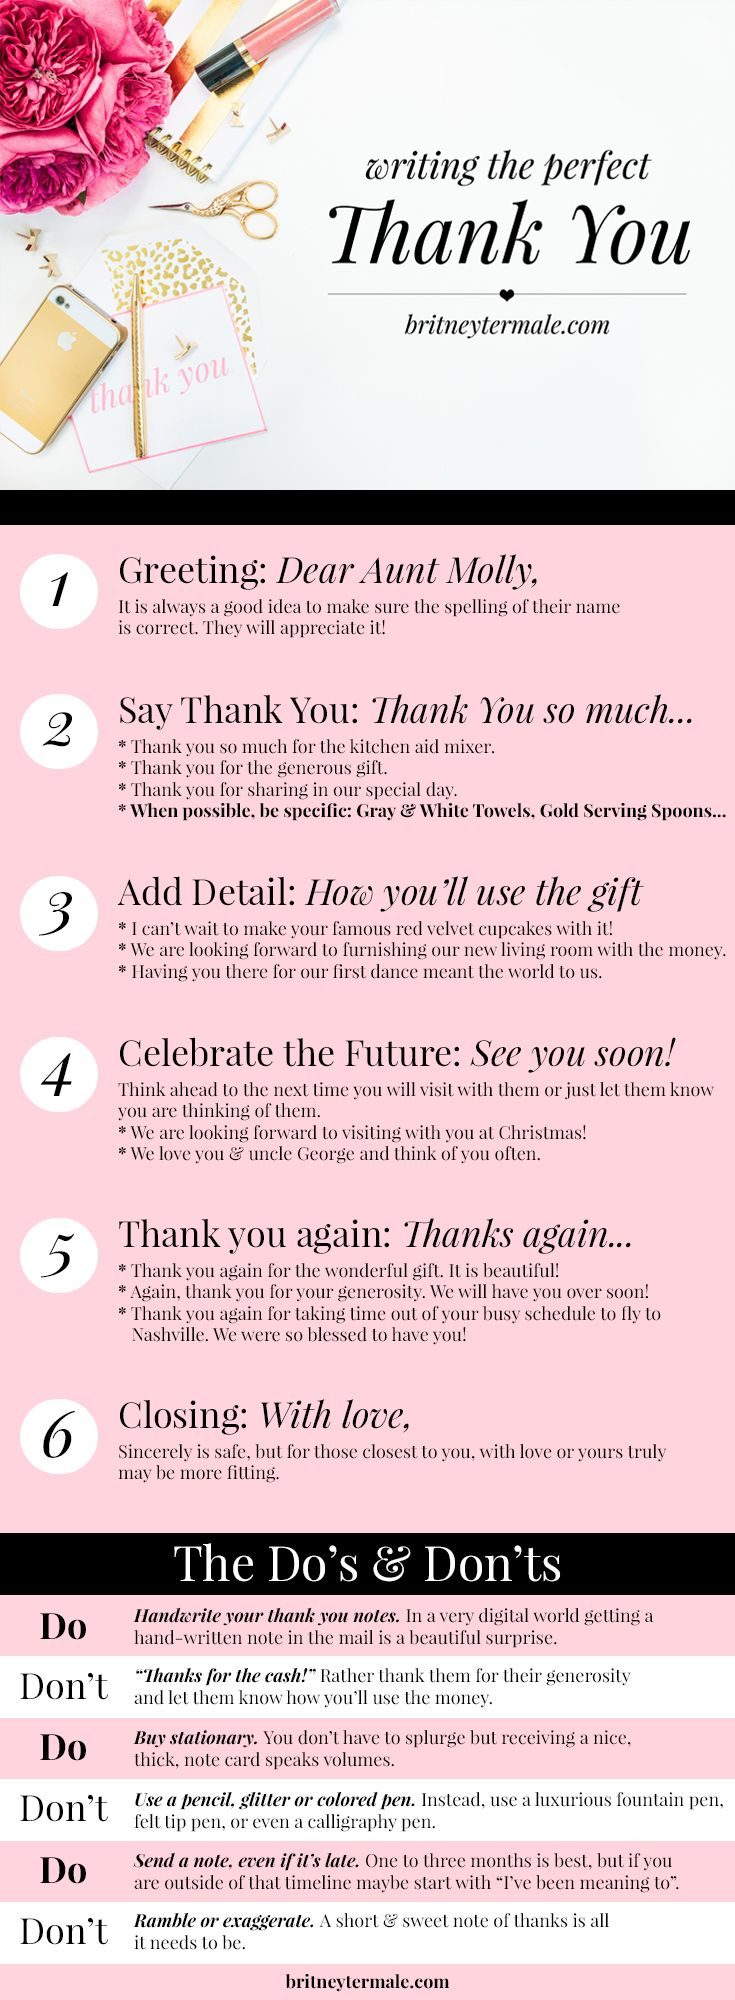 25 unique thank you letter ideas on pinterest thank you note how to write the perfect thank you note l britney termale negle Choice Image